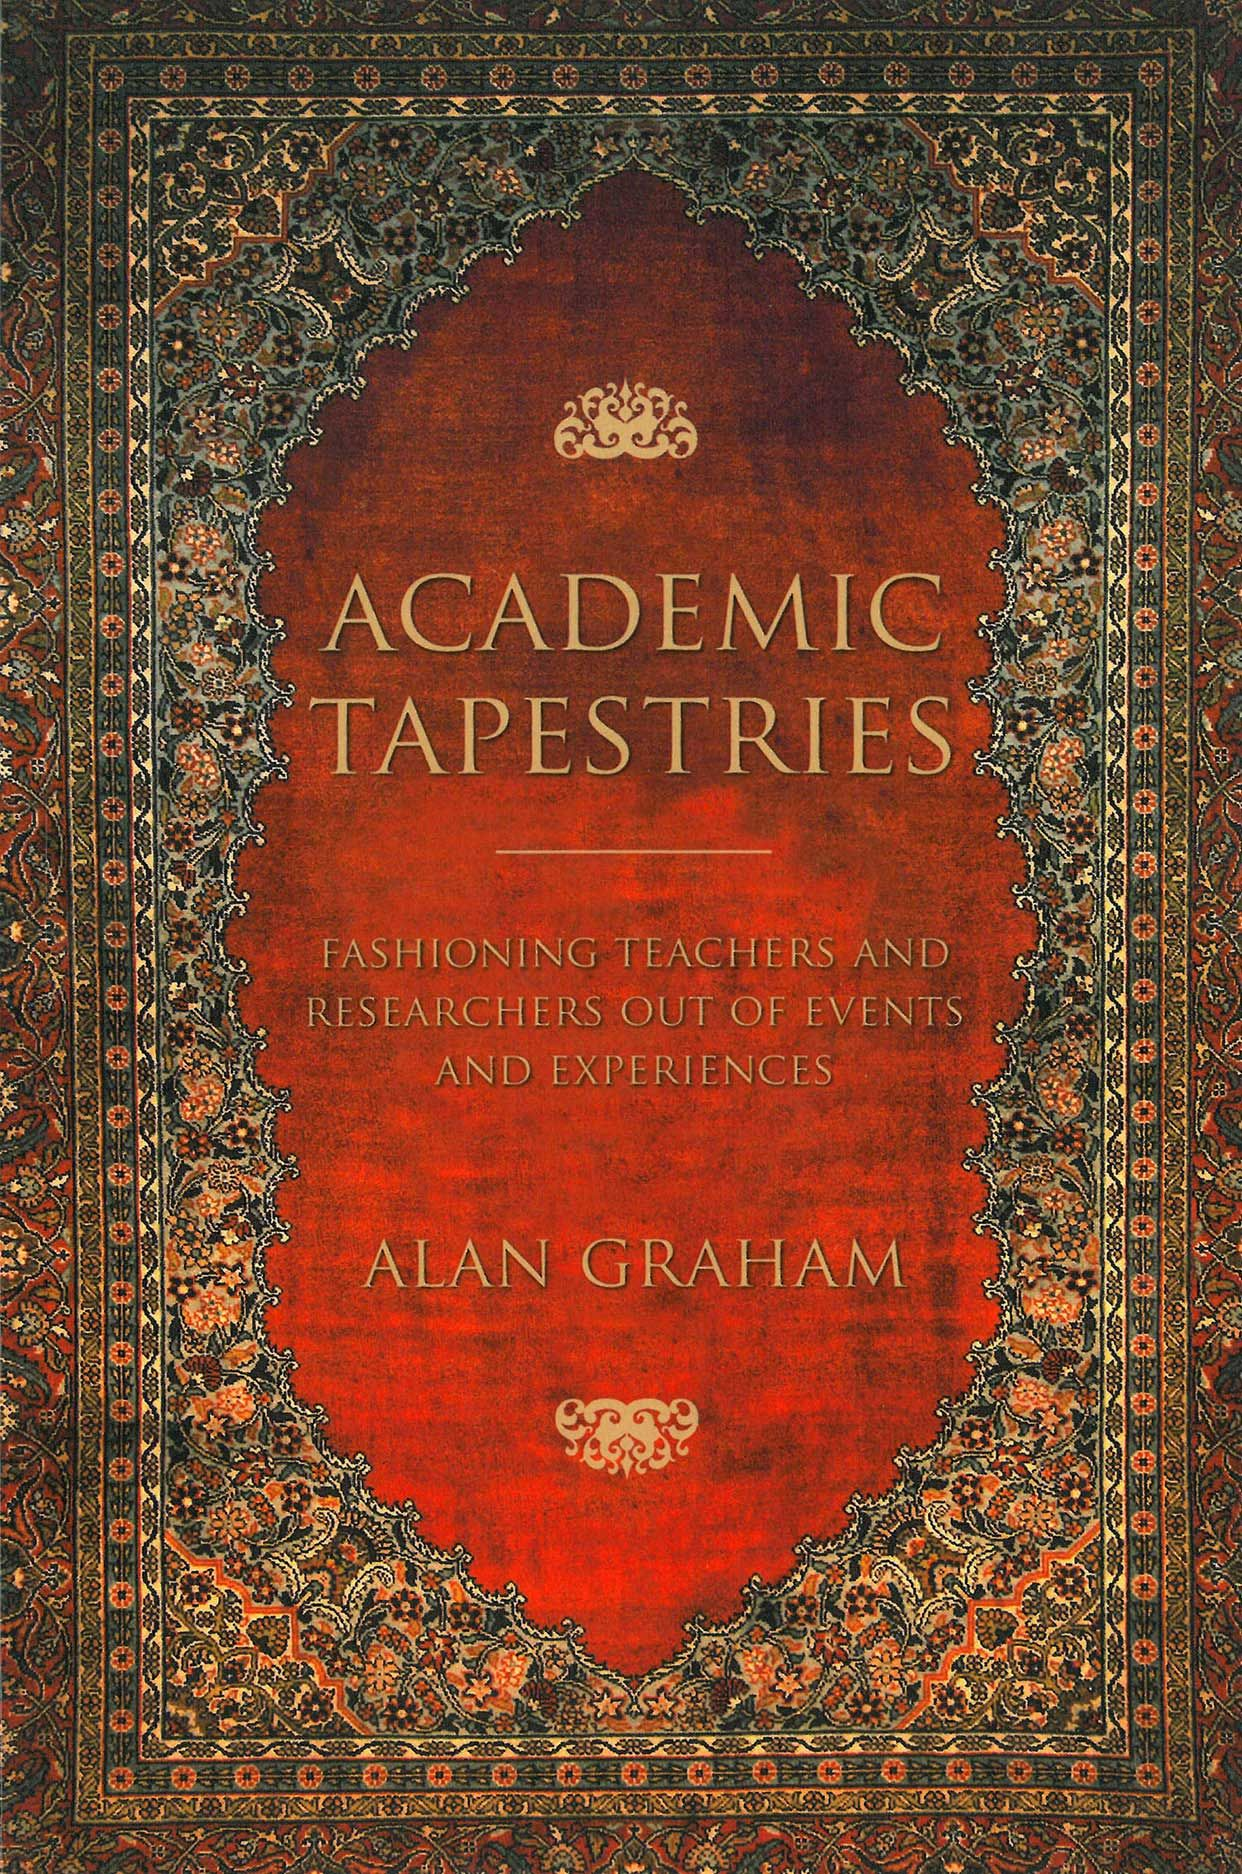 Academic Tapestries: Fashioning Teachers and Researchers Out of Events and Experiences